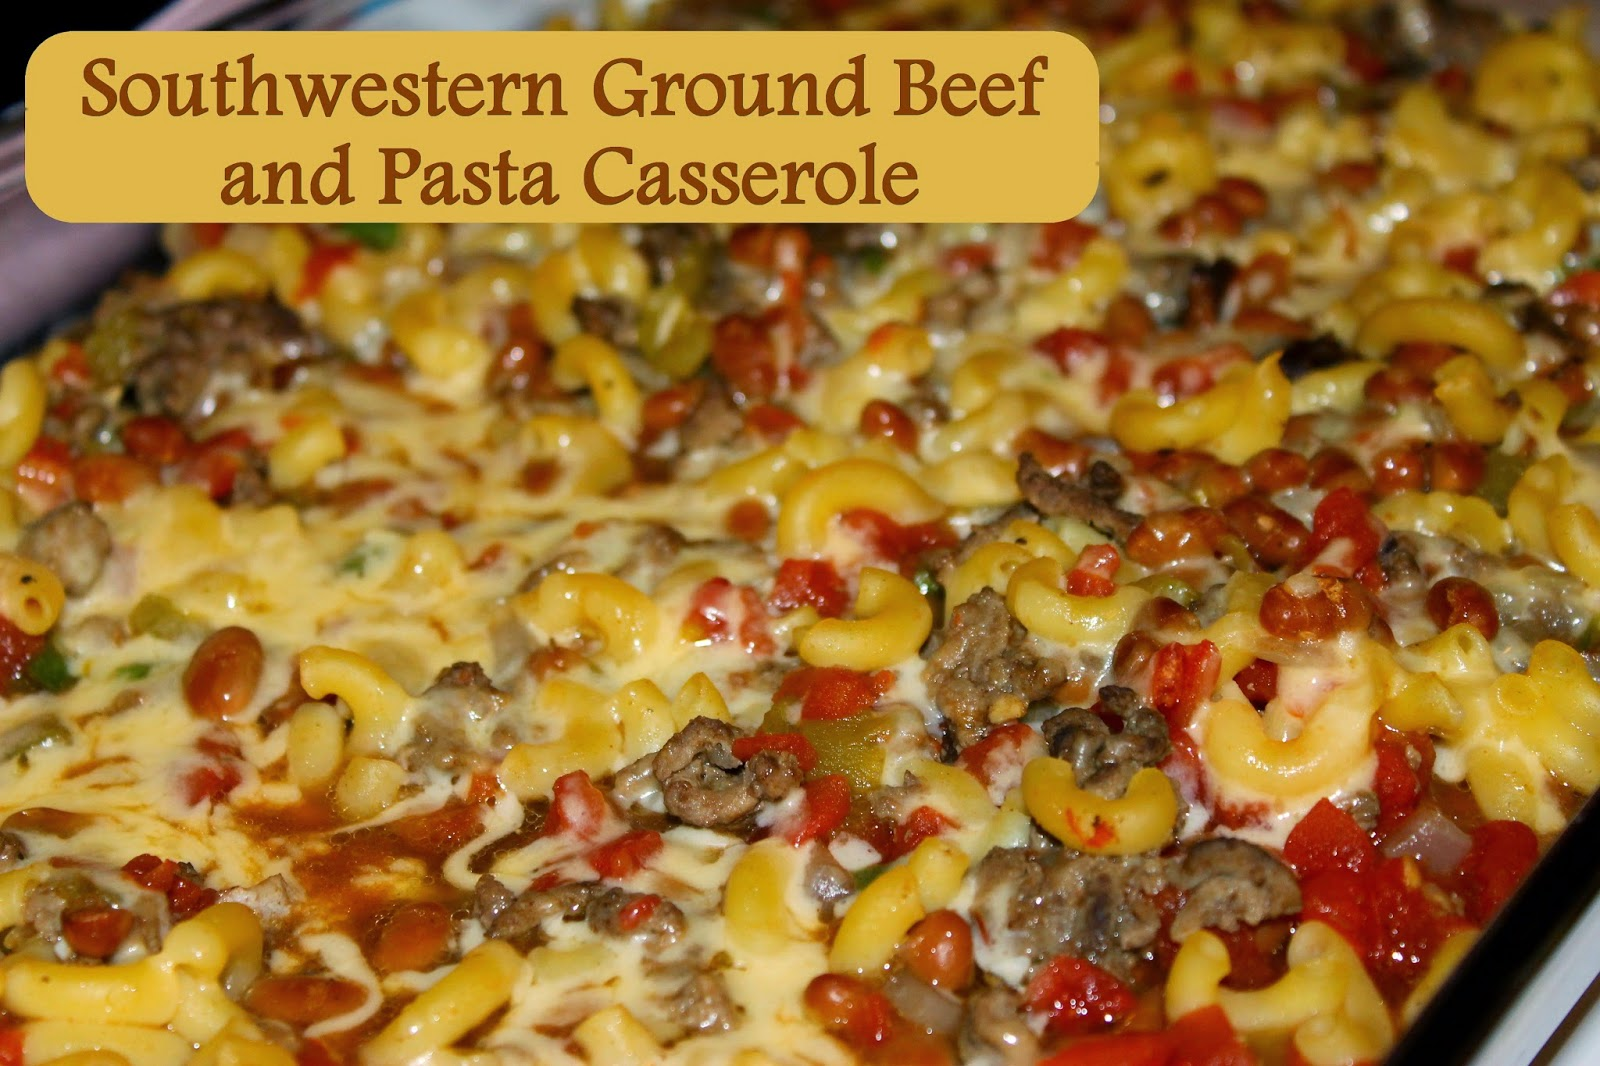 Moms Pantry: Recipe: Southwestern Ground Beef and Pasta Casserole